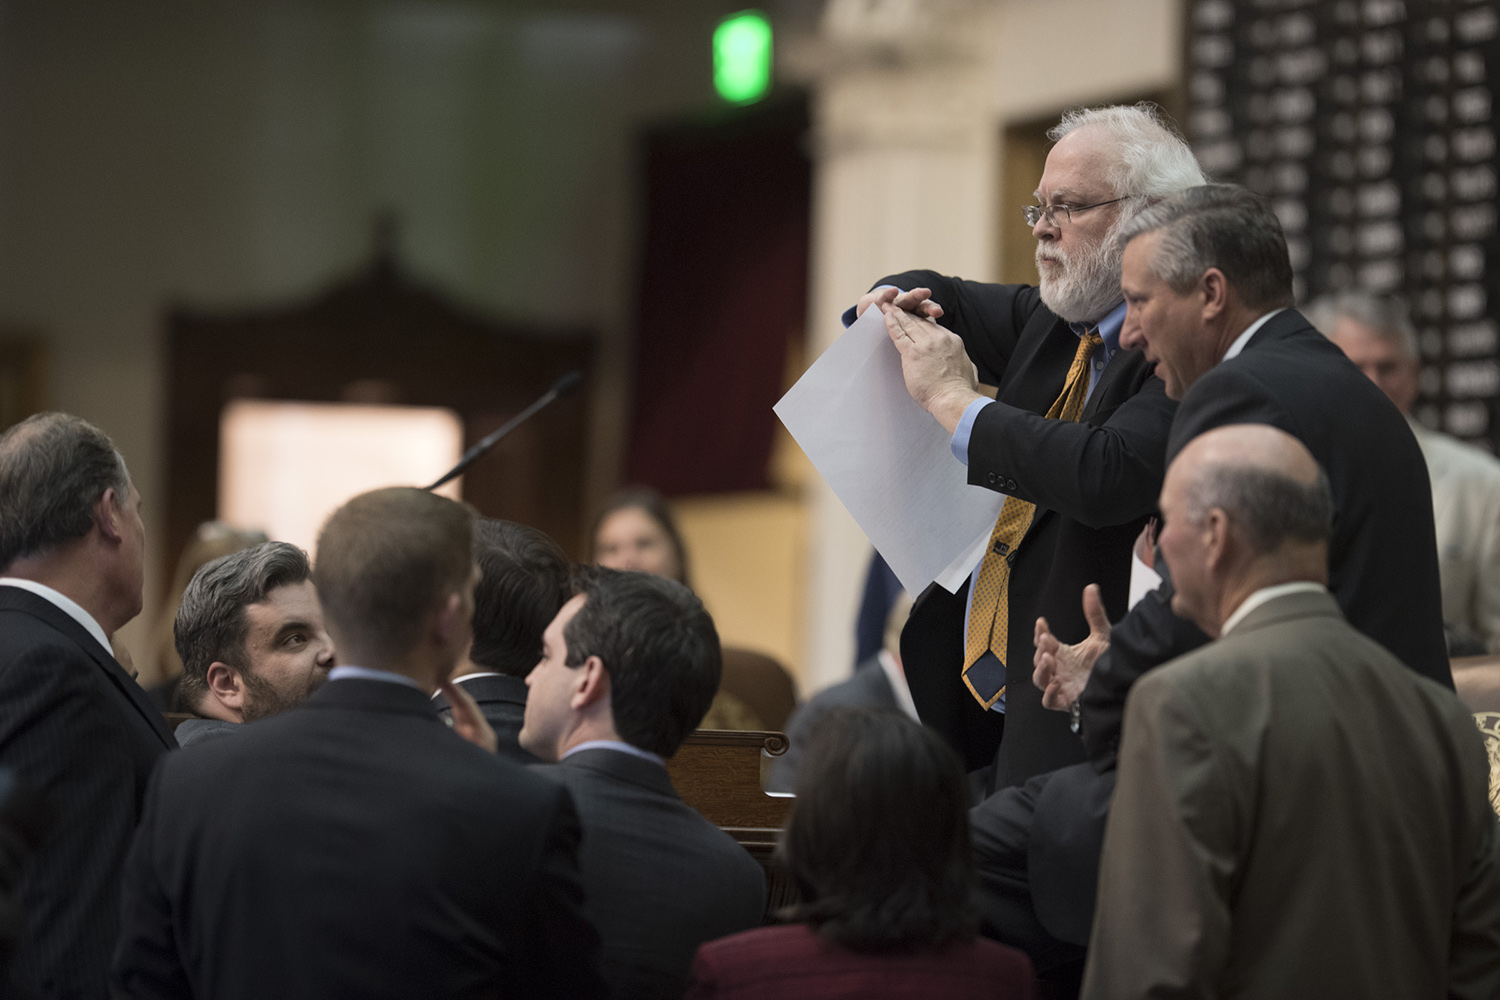 Perhaps the most heated moments of the debate arose between Stickland and Rep. Drew Springer, R-Muenster, over continued funding of a feral hog abatement program.  Here, House Parliamentarian Chris Griesel signals time out as tempers flare.